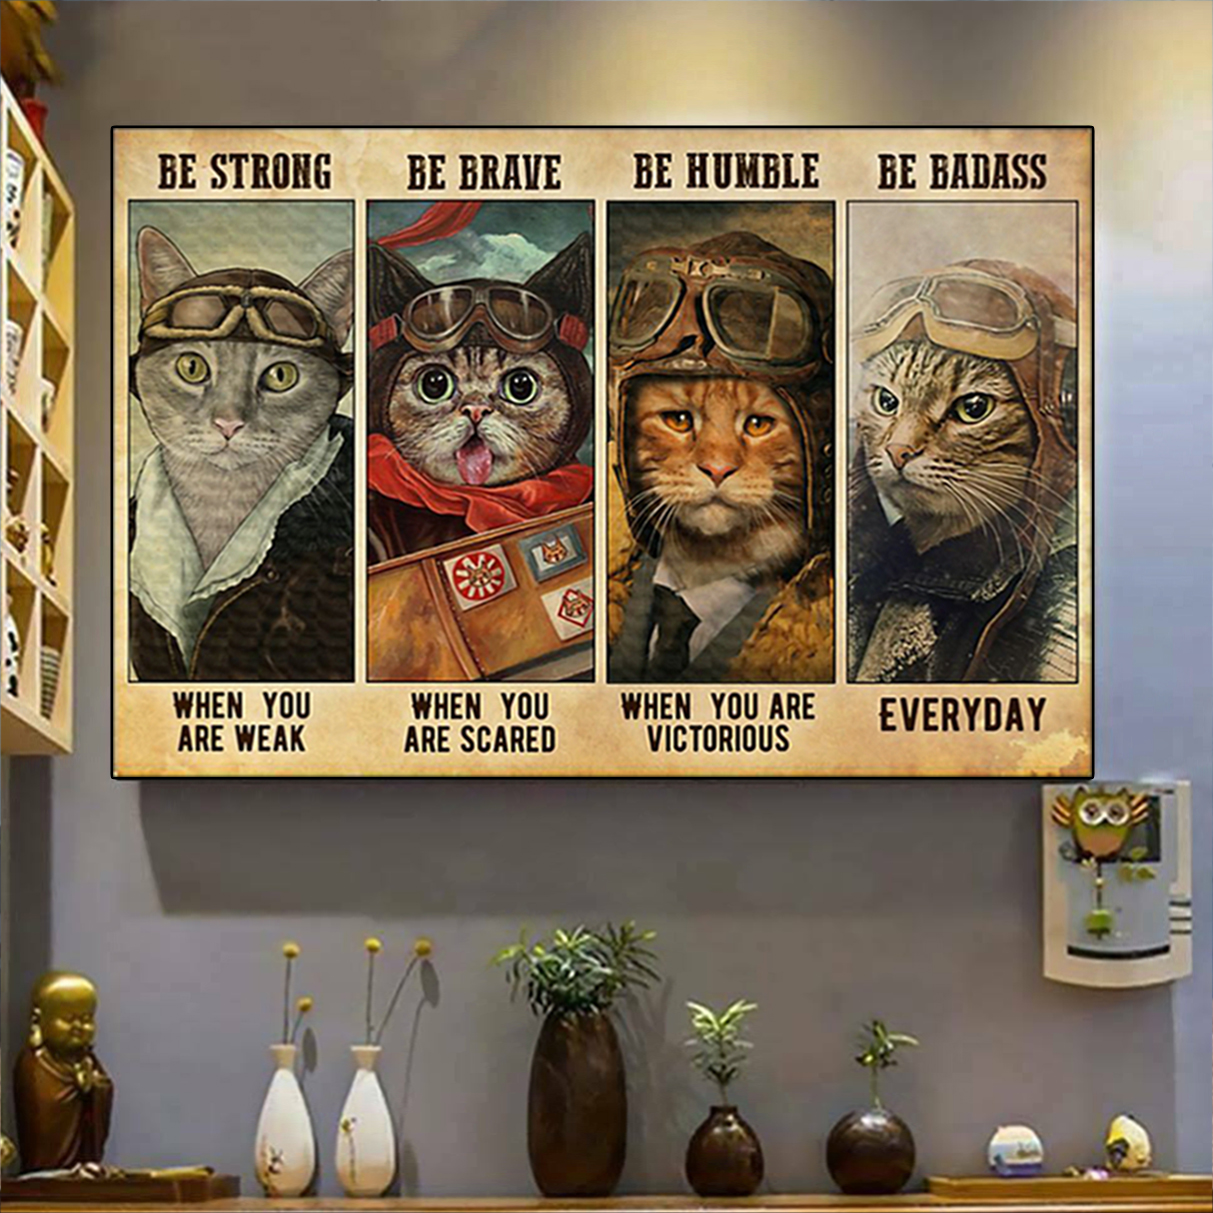 Cat pilot be strong be brave be humble be badass poster A1